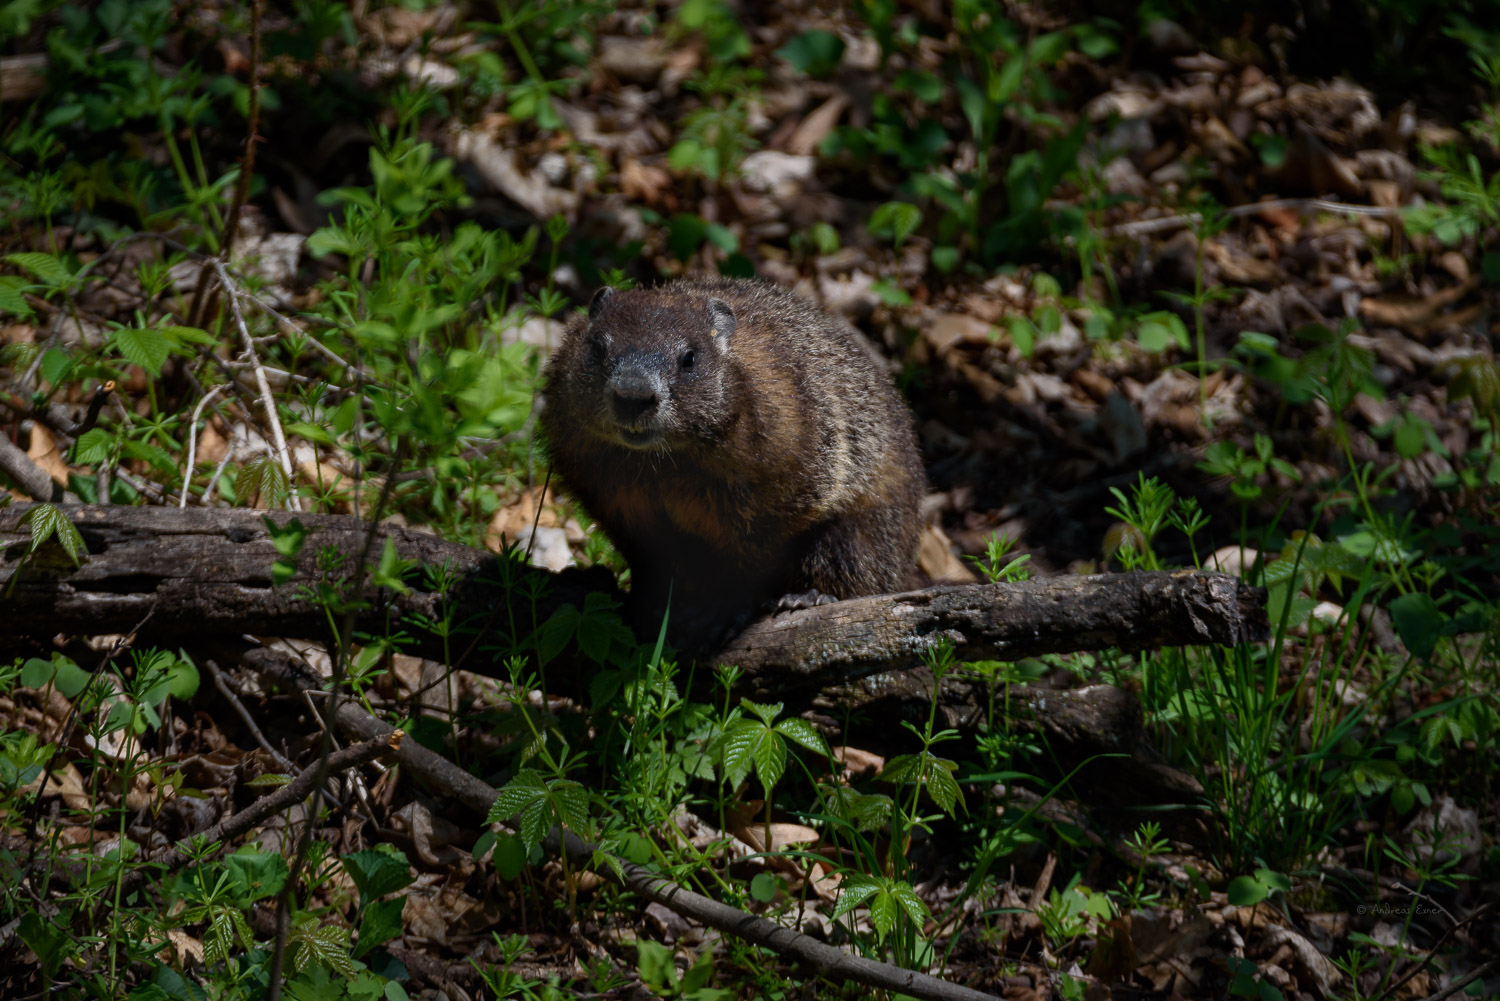 Groundhog (Marmota monax), also known as the woodchuck ---------